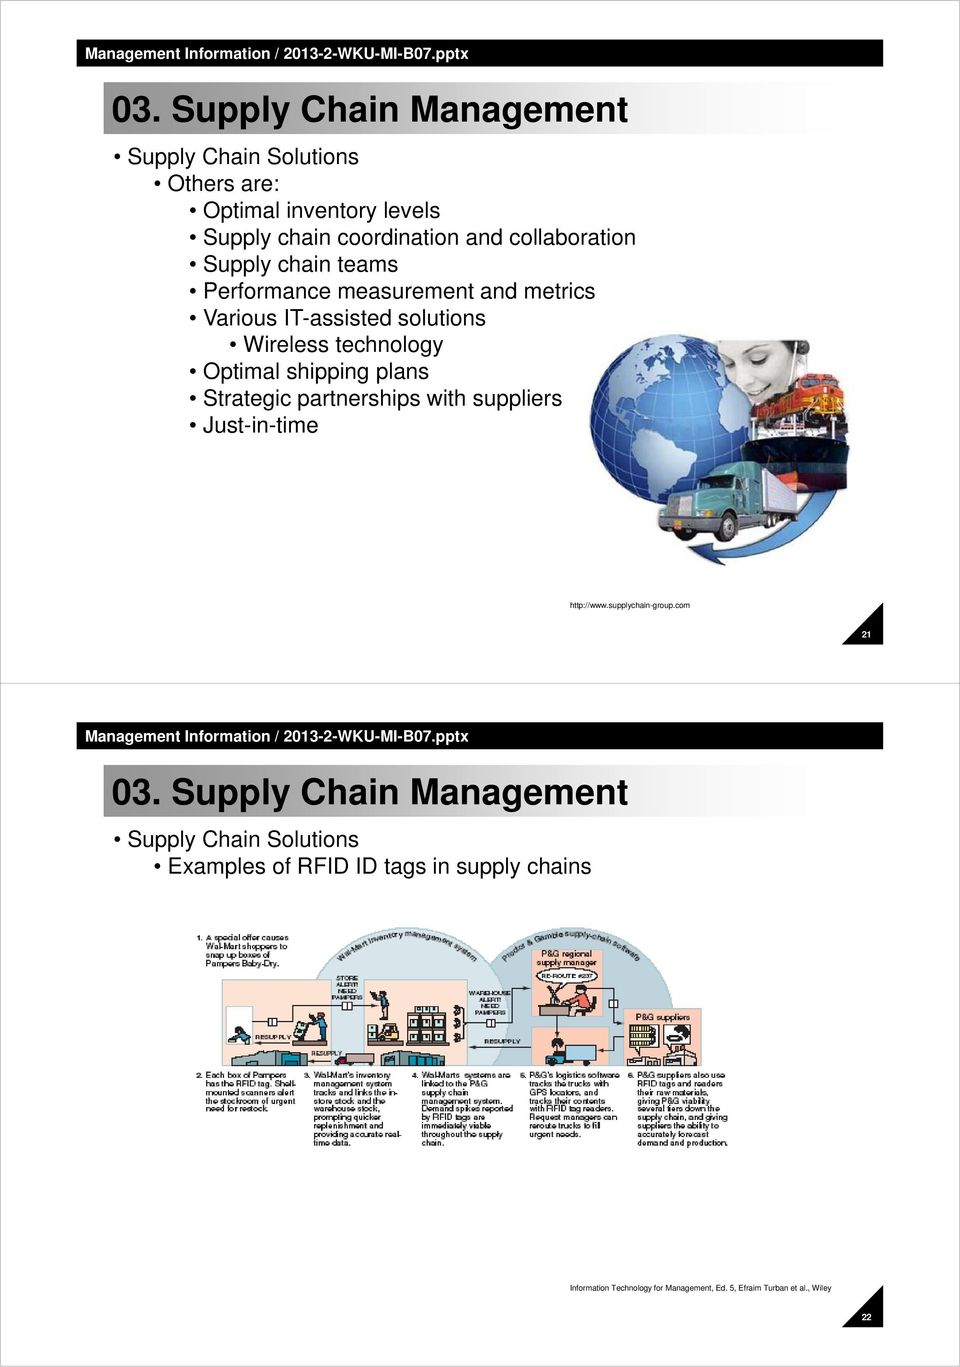 plans Strategic partnerships with suppliers Just-in-time http://www.supplychain-group.